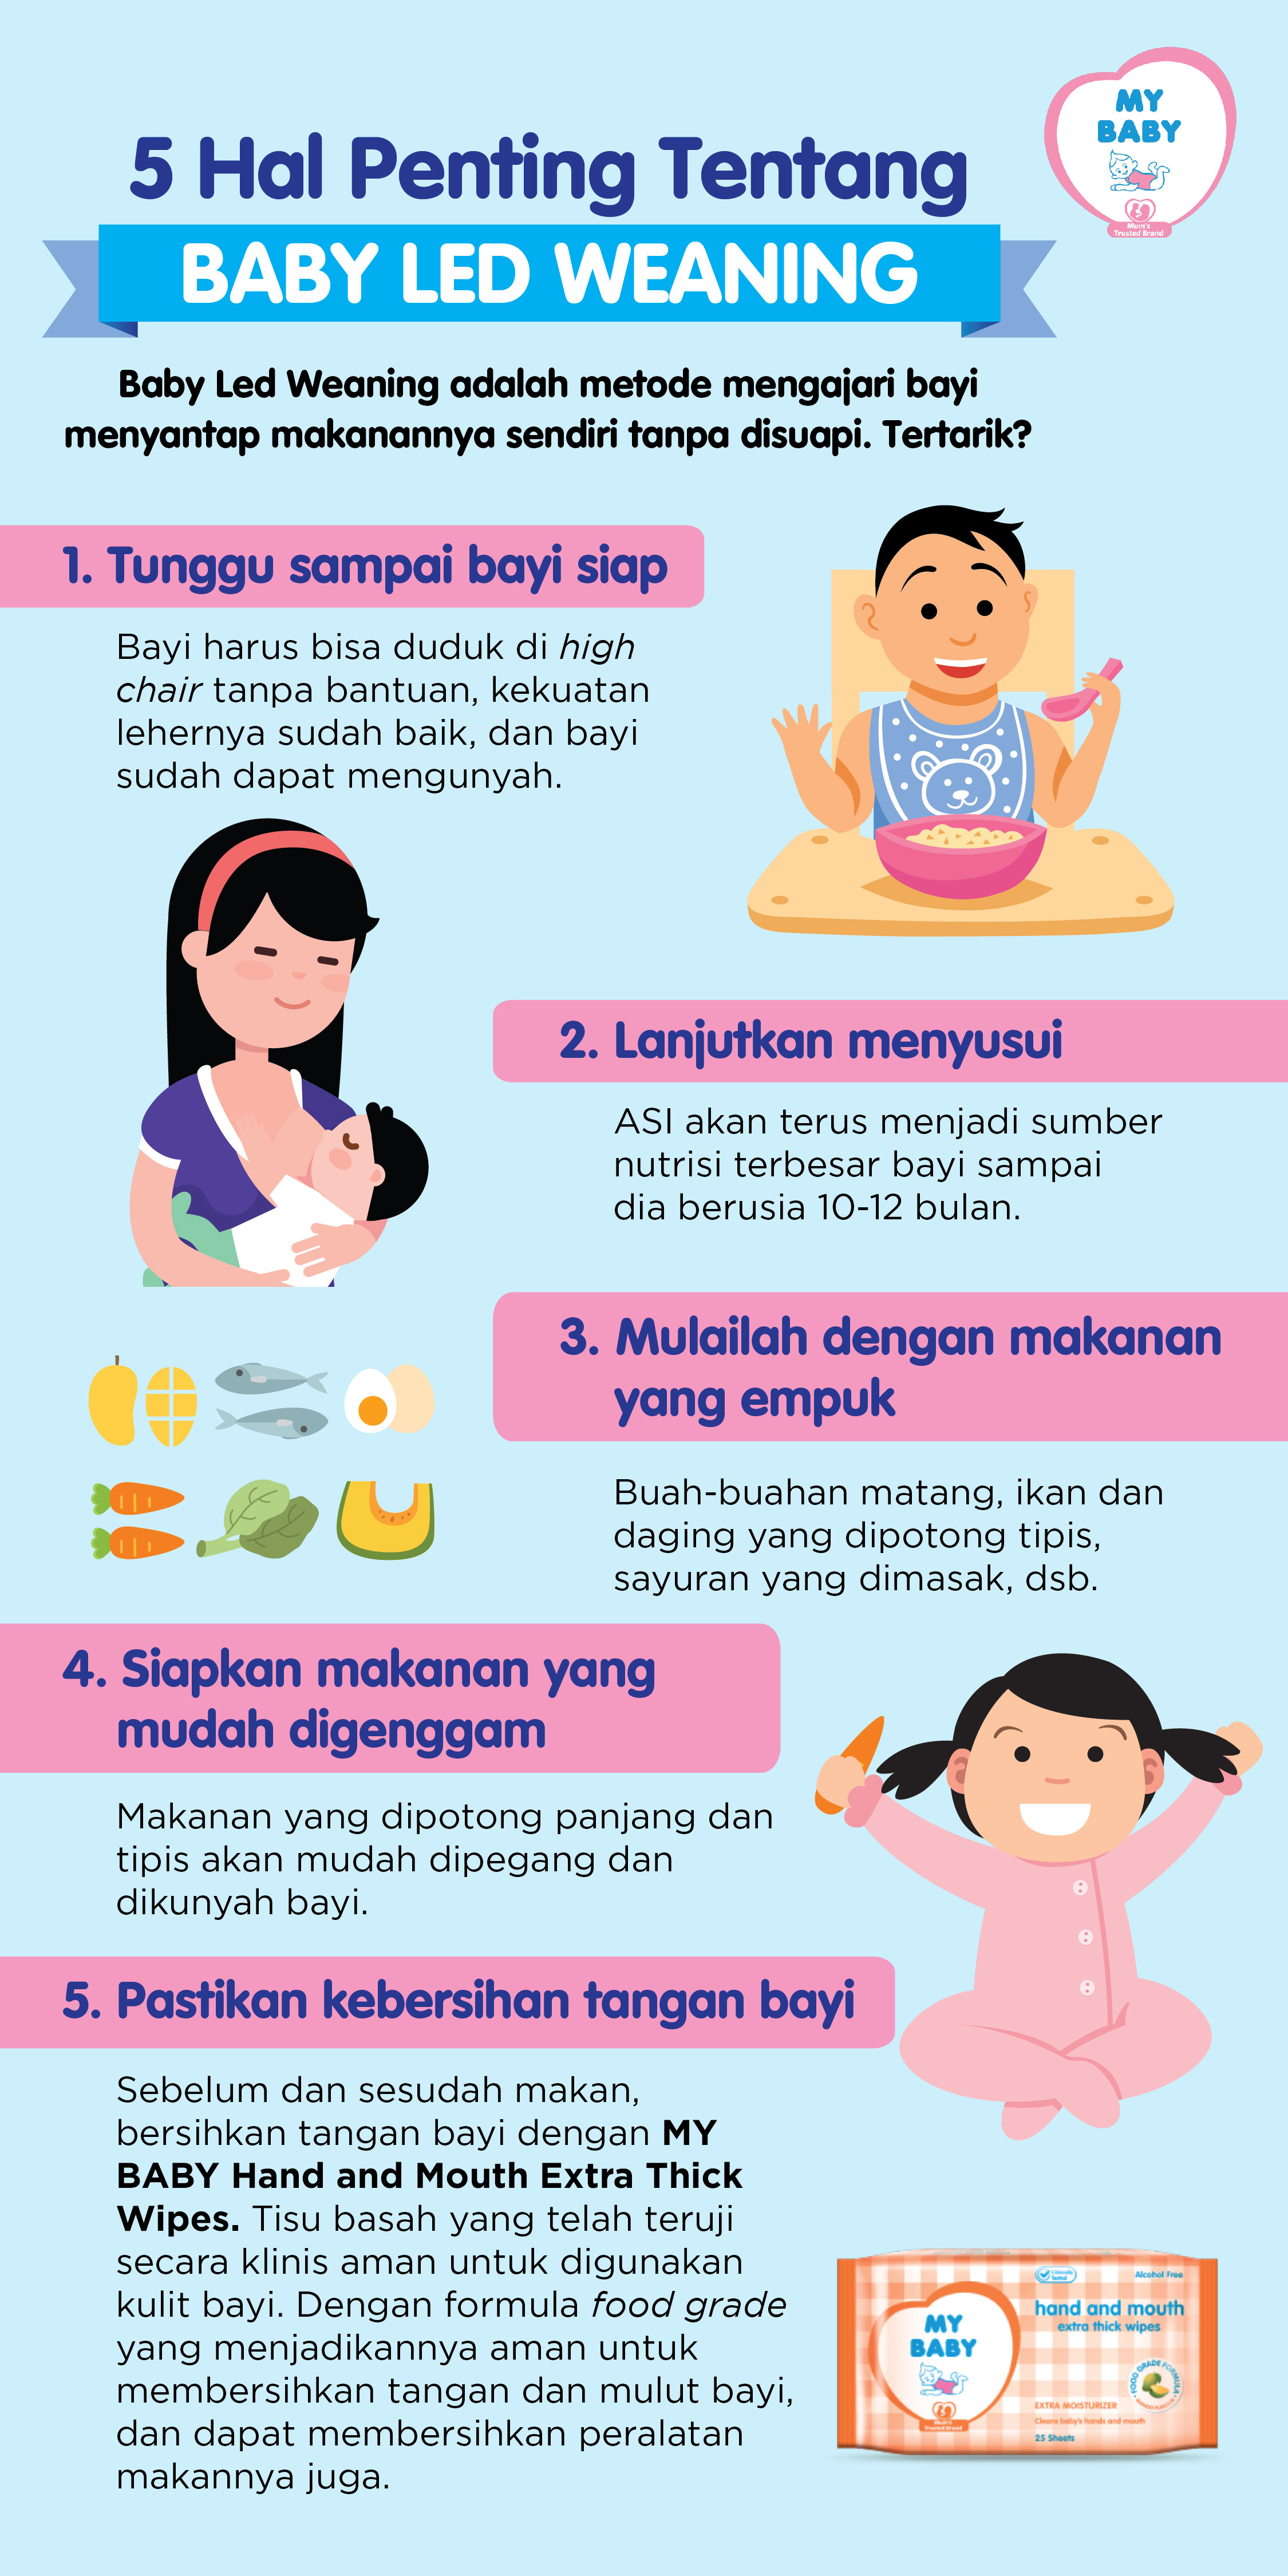 5 Hal Penting Tentang Baby Led Weaning